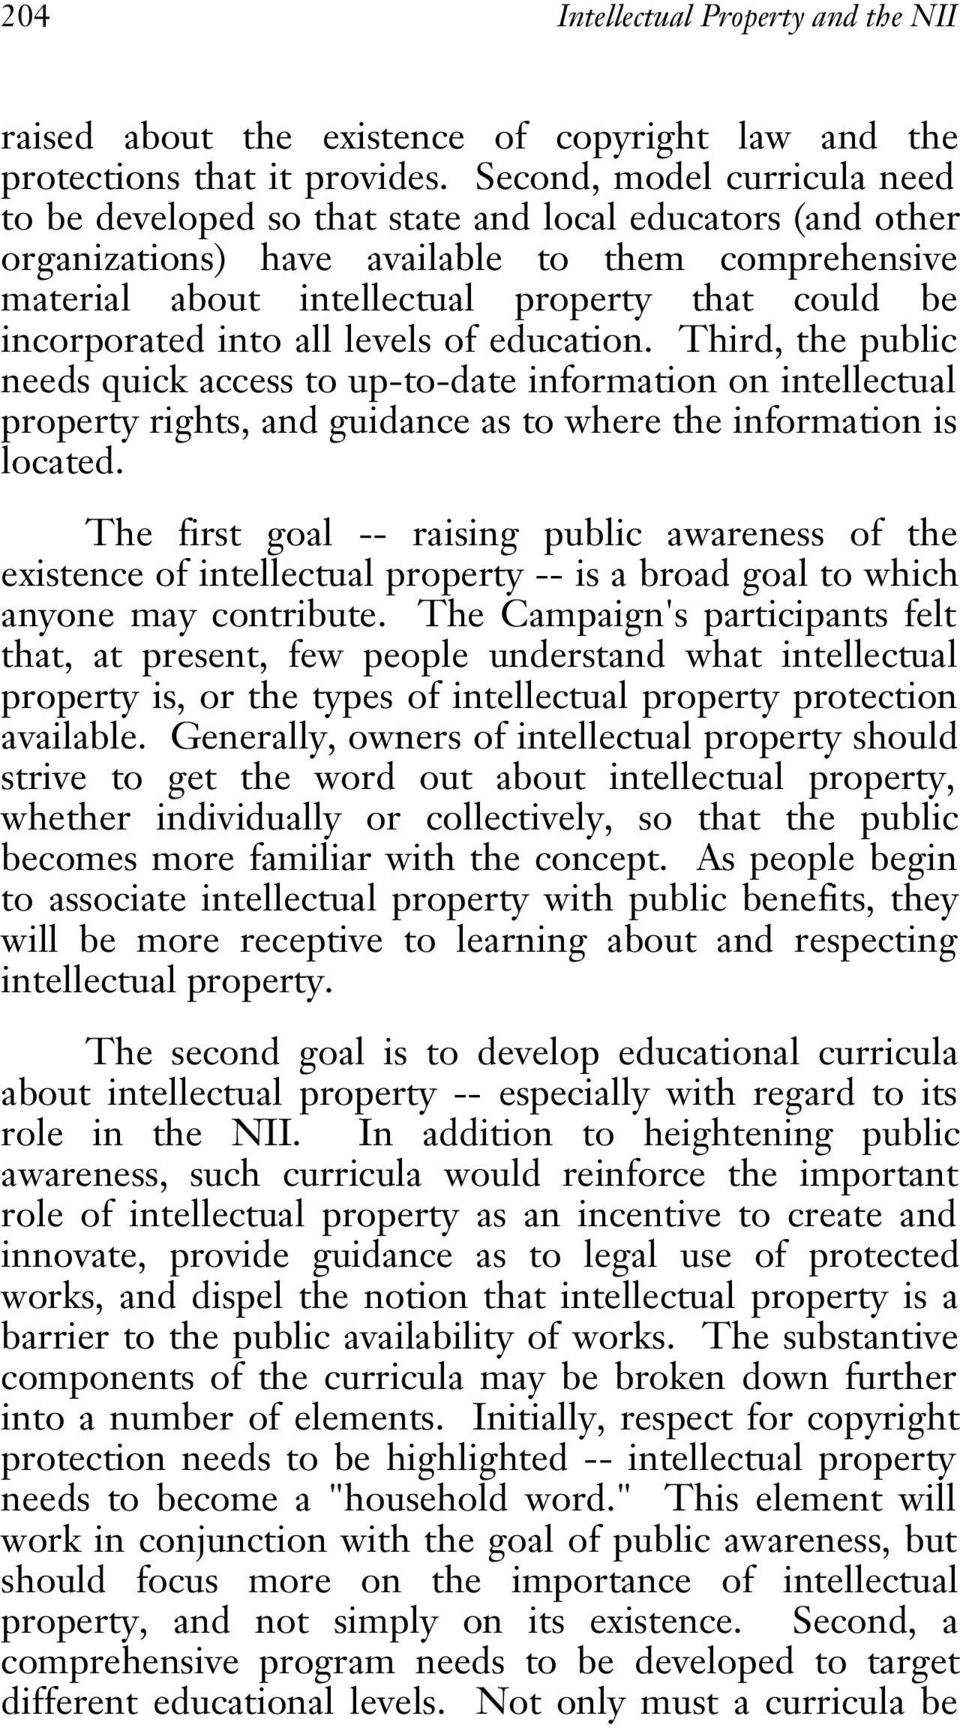 incorporated into all levels of education. Third, the public needs quick access to up-to-date information on intellectual property rights, and guidance as to where the information is located.